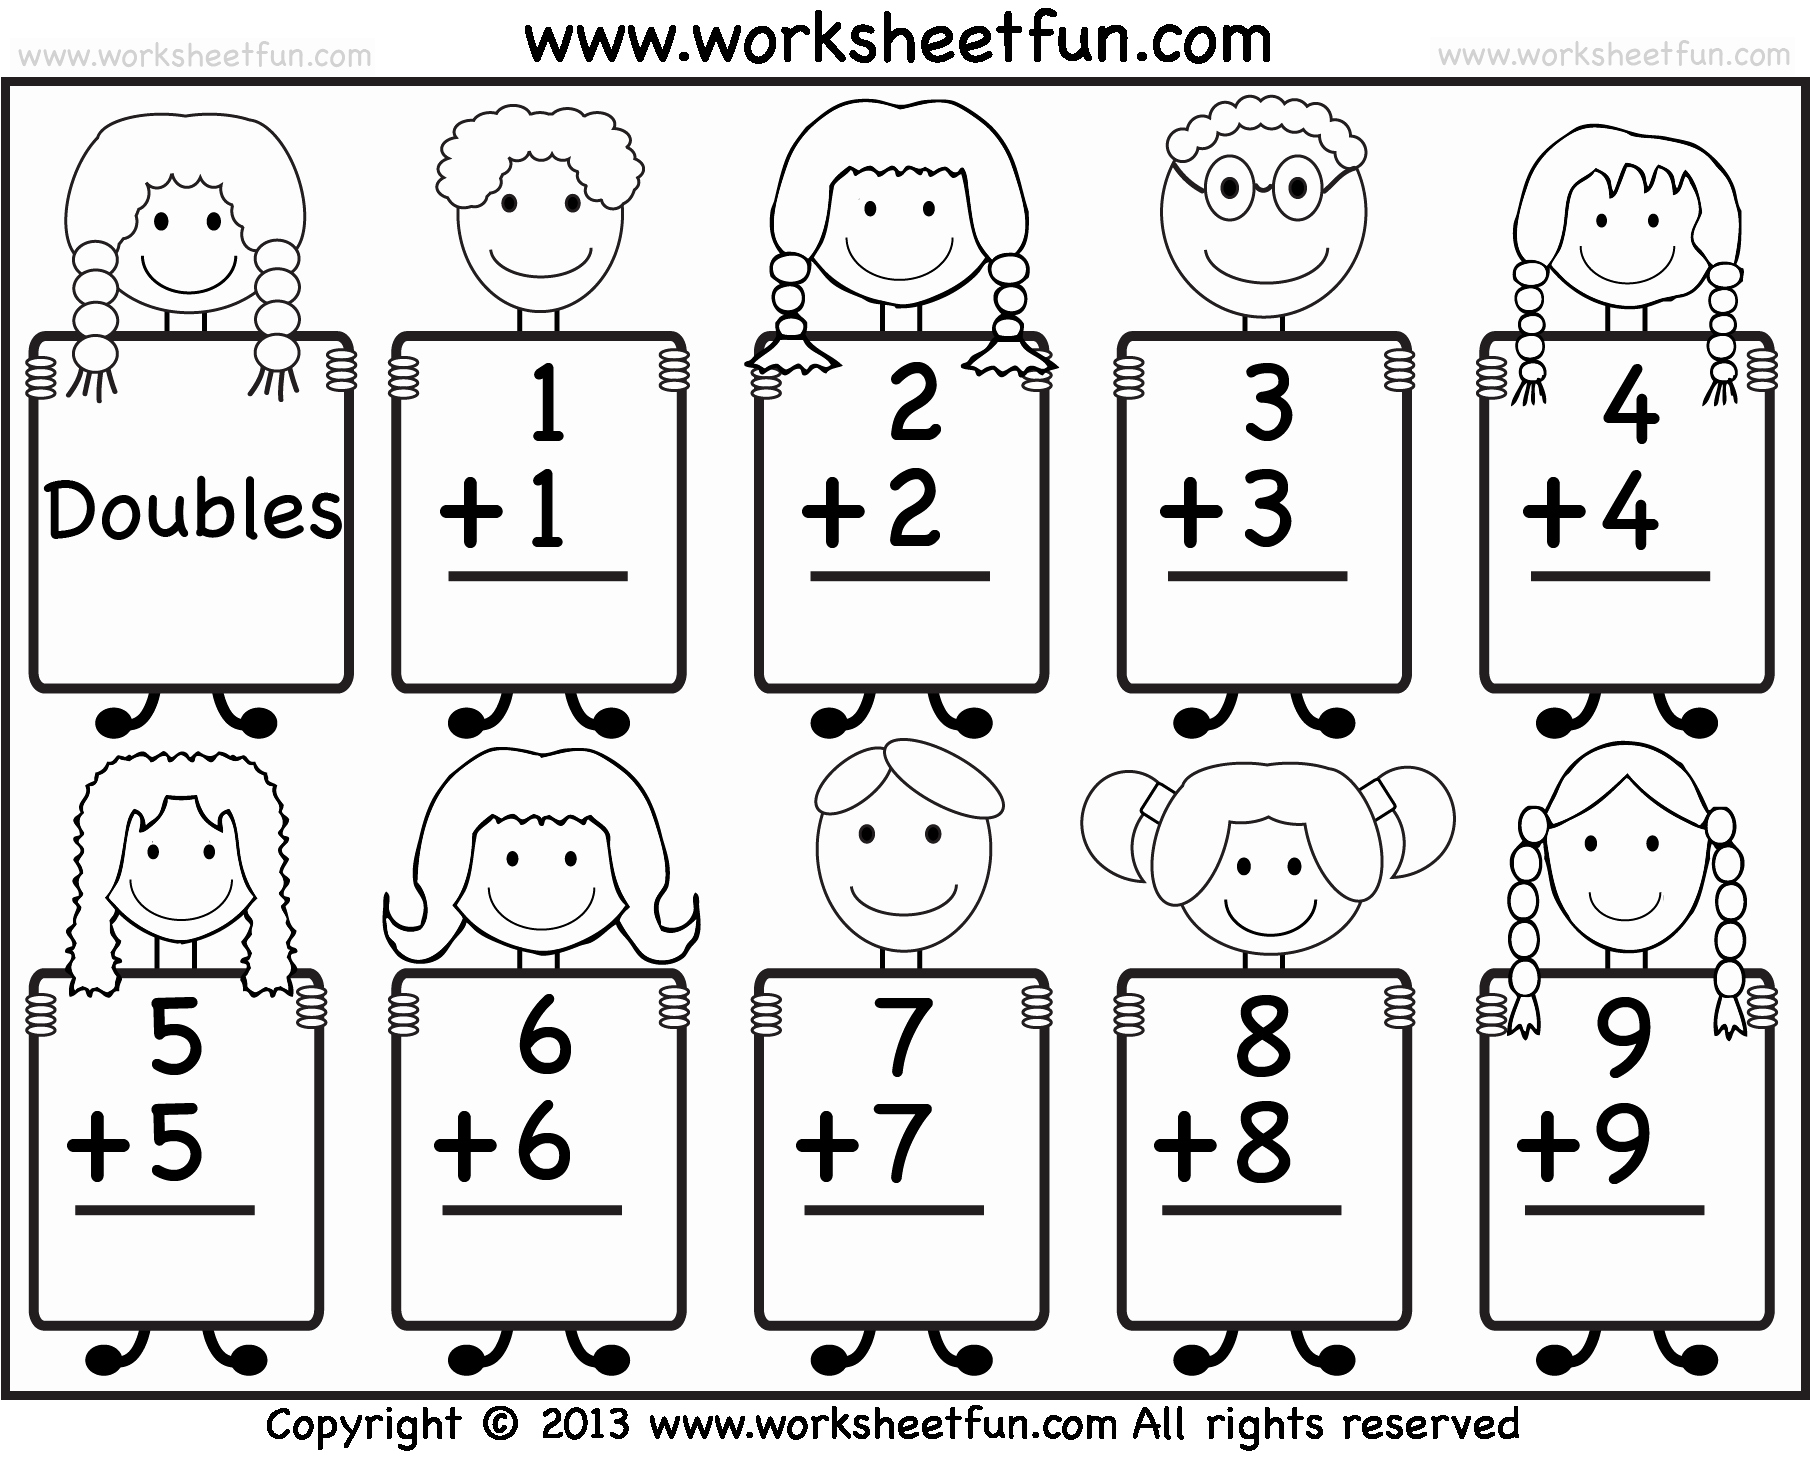 Doubles Addition Worksheet Awesome Addition Doubles Facts – Beginner Addition Worksheet